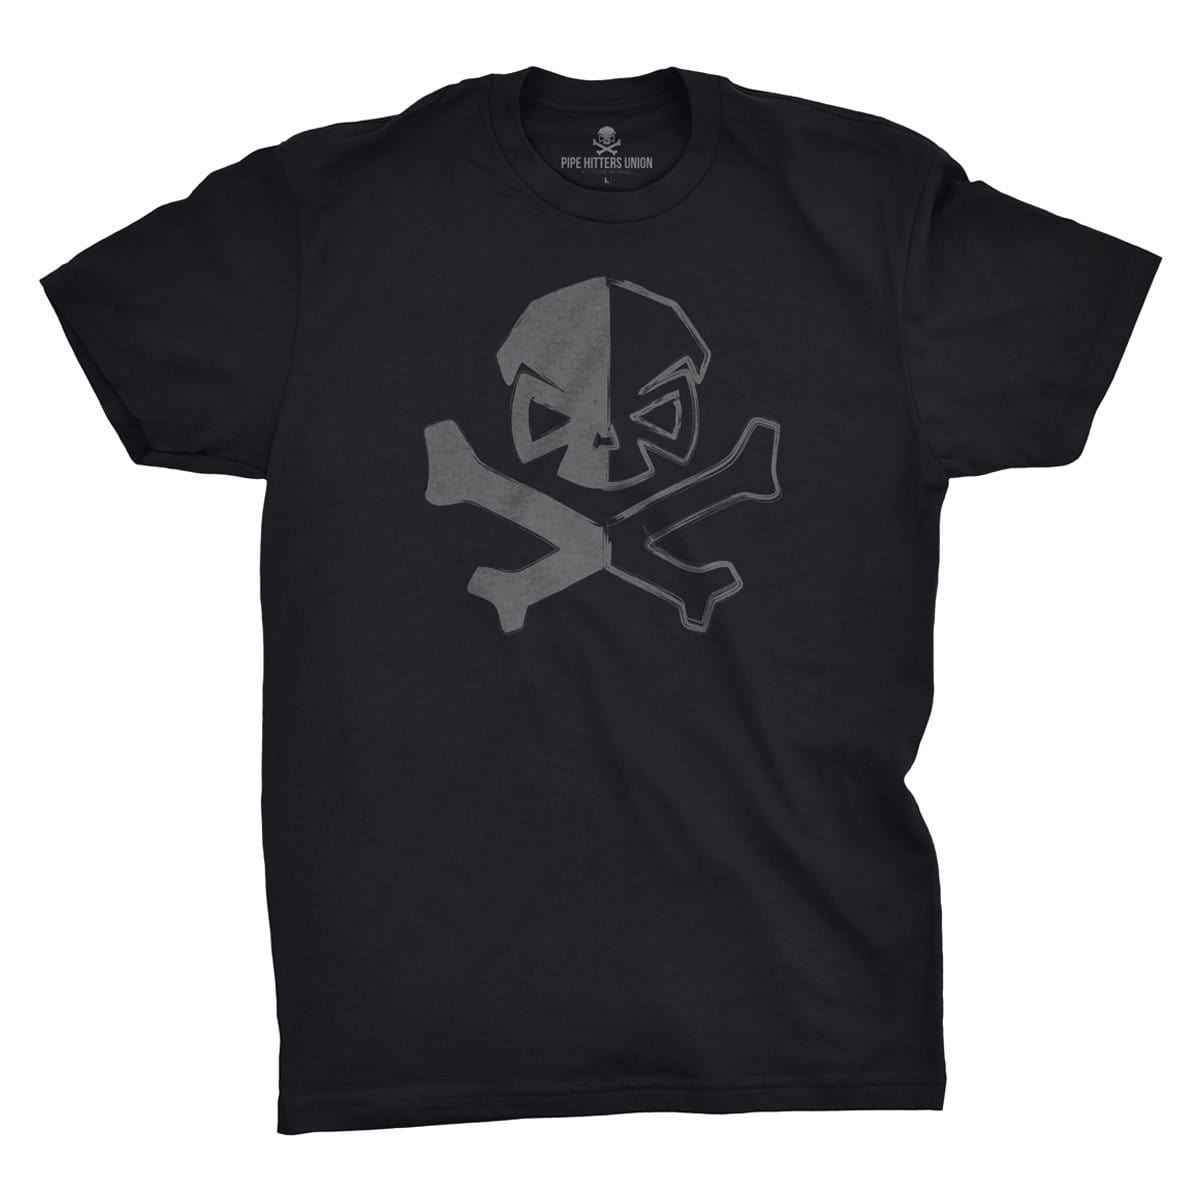 Dichotomy of a Pipe Hitter - Black - T-Shirts - Pipe Hitters Union